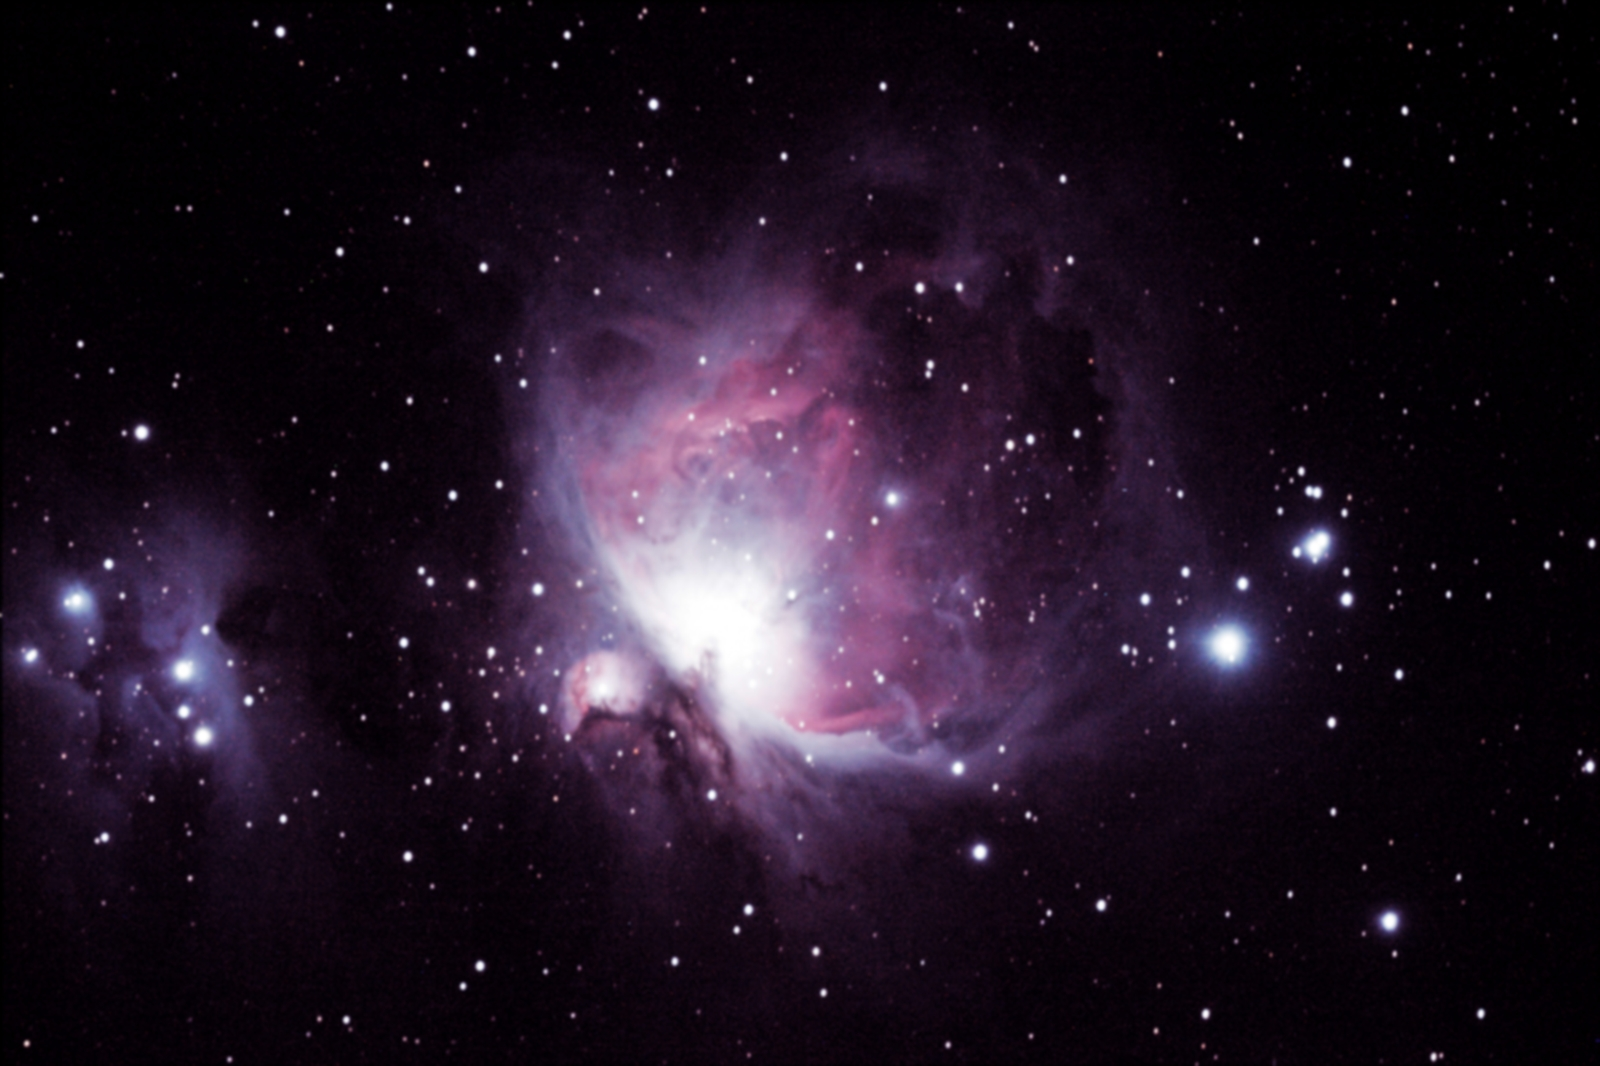 eskimo nebula location orion - photo #47